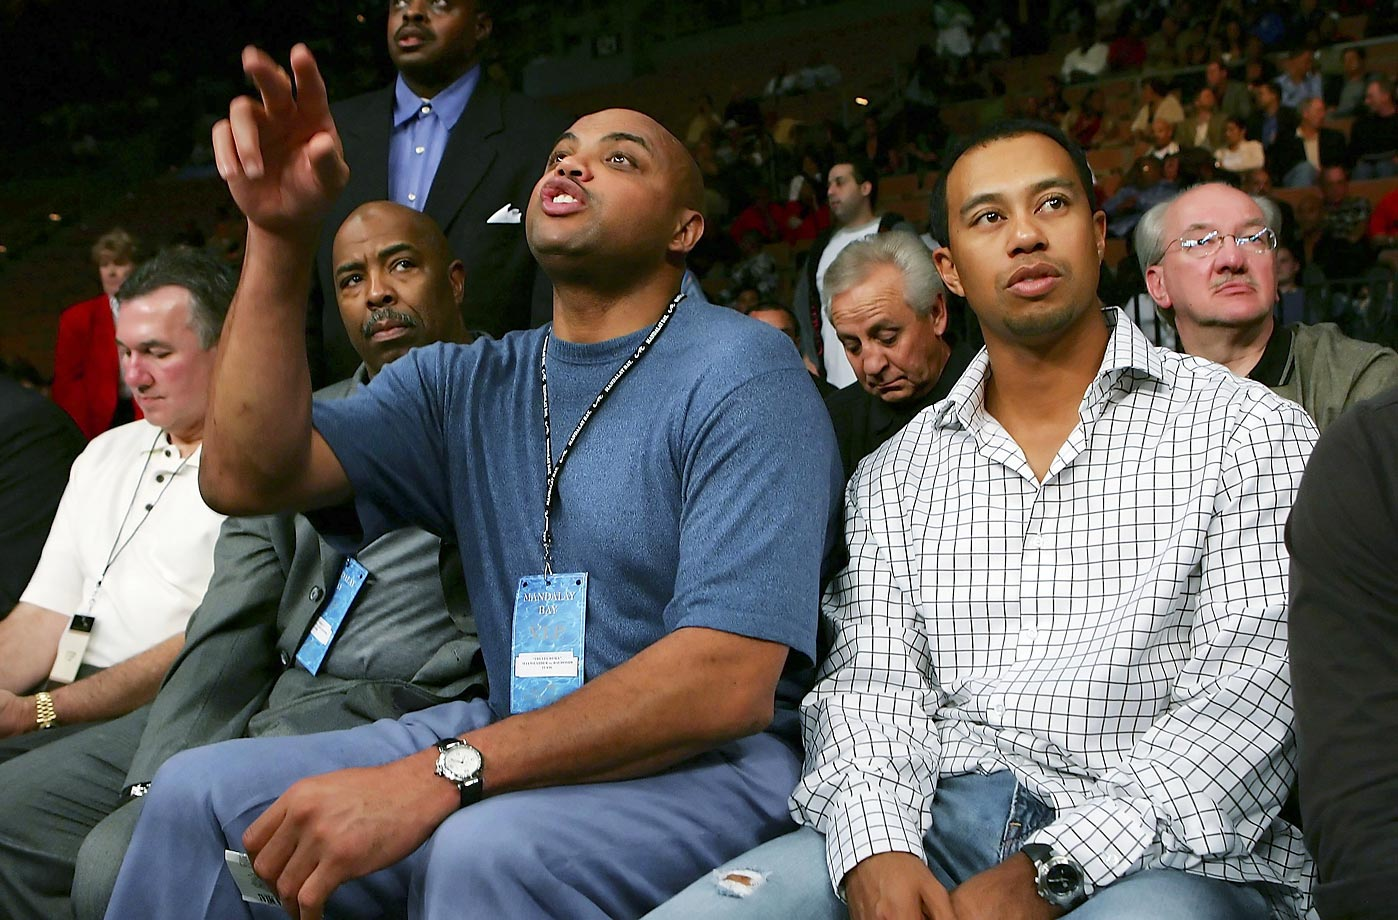 Tiger Woods and Charles Barkley at the Robert Guerrero-Orlando Salido fight.